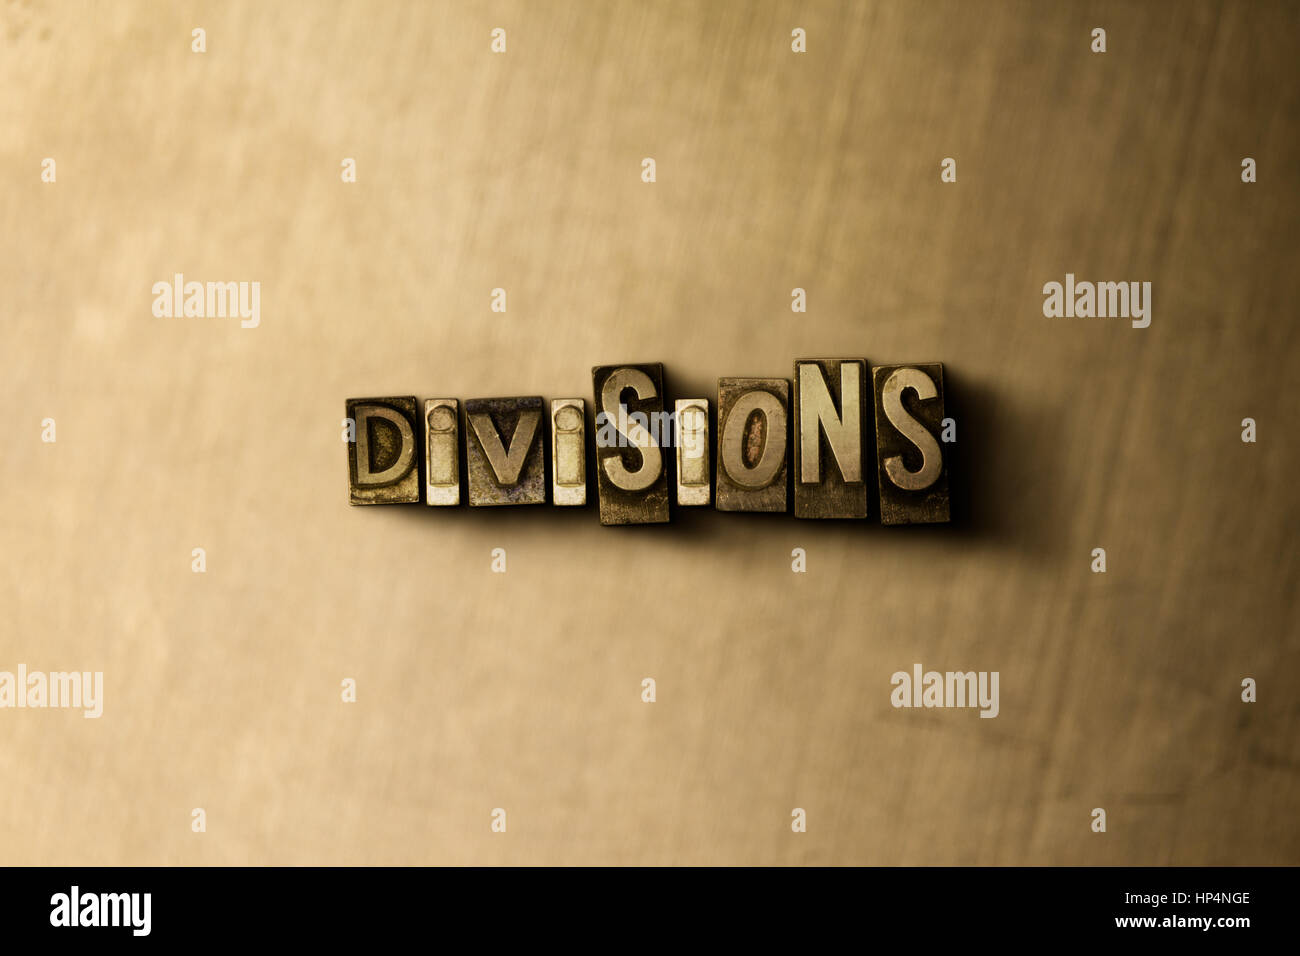 DIVISIONS - close-up of grungy vintage typeset word on metal backdrop. Royalty free stock illustration.  Can be - Stock Image